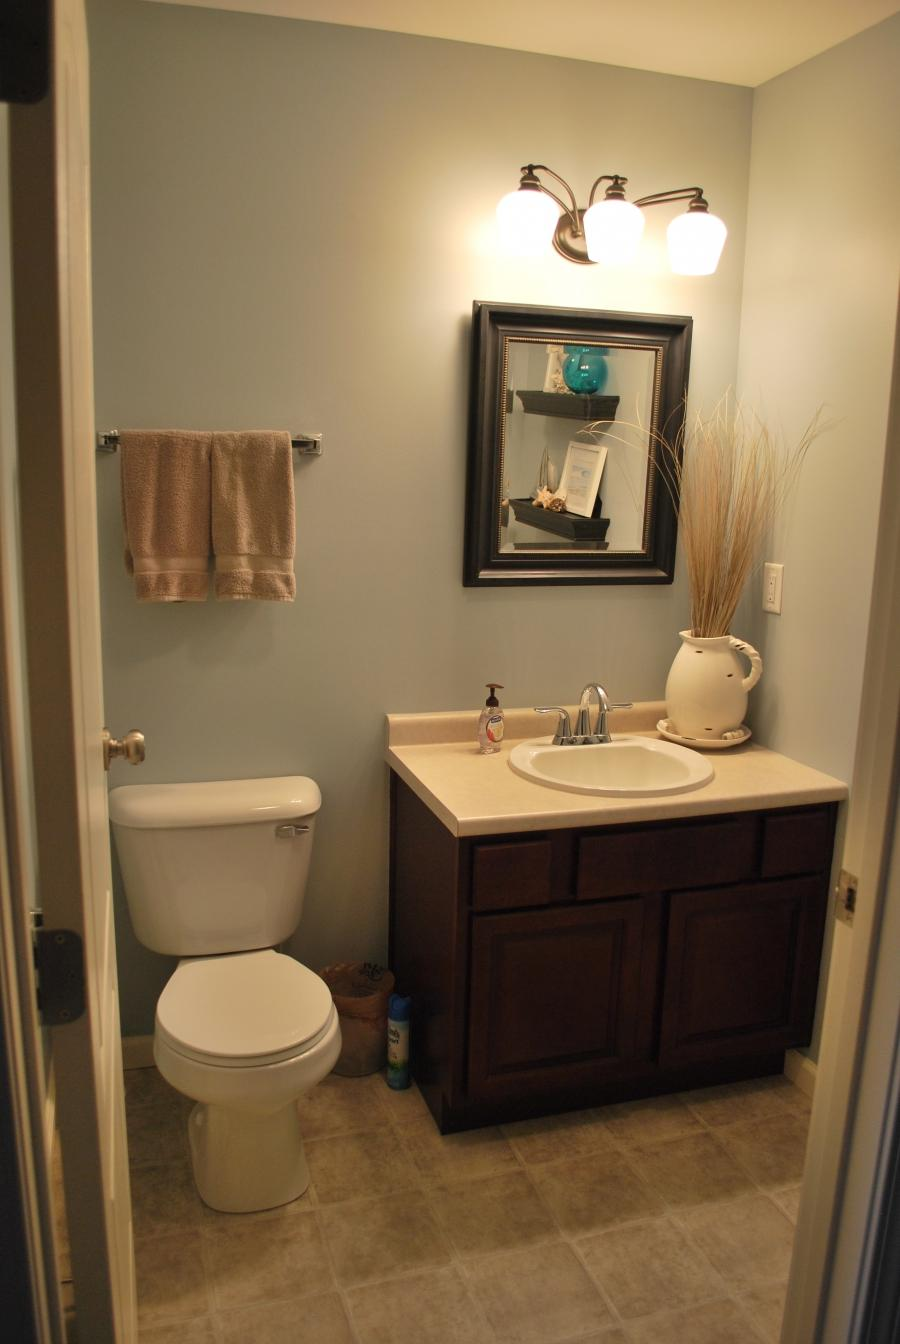 Half Bathroom Ideas Photo Gallery: bathroom decor ideas images